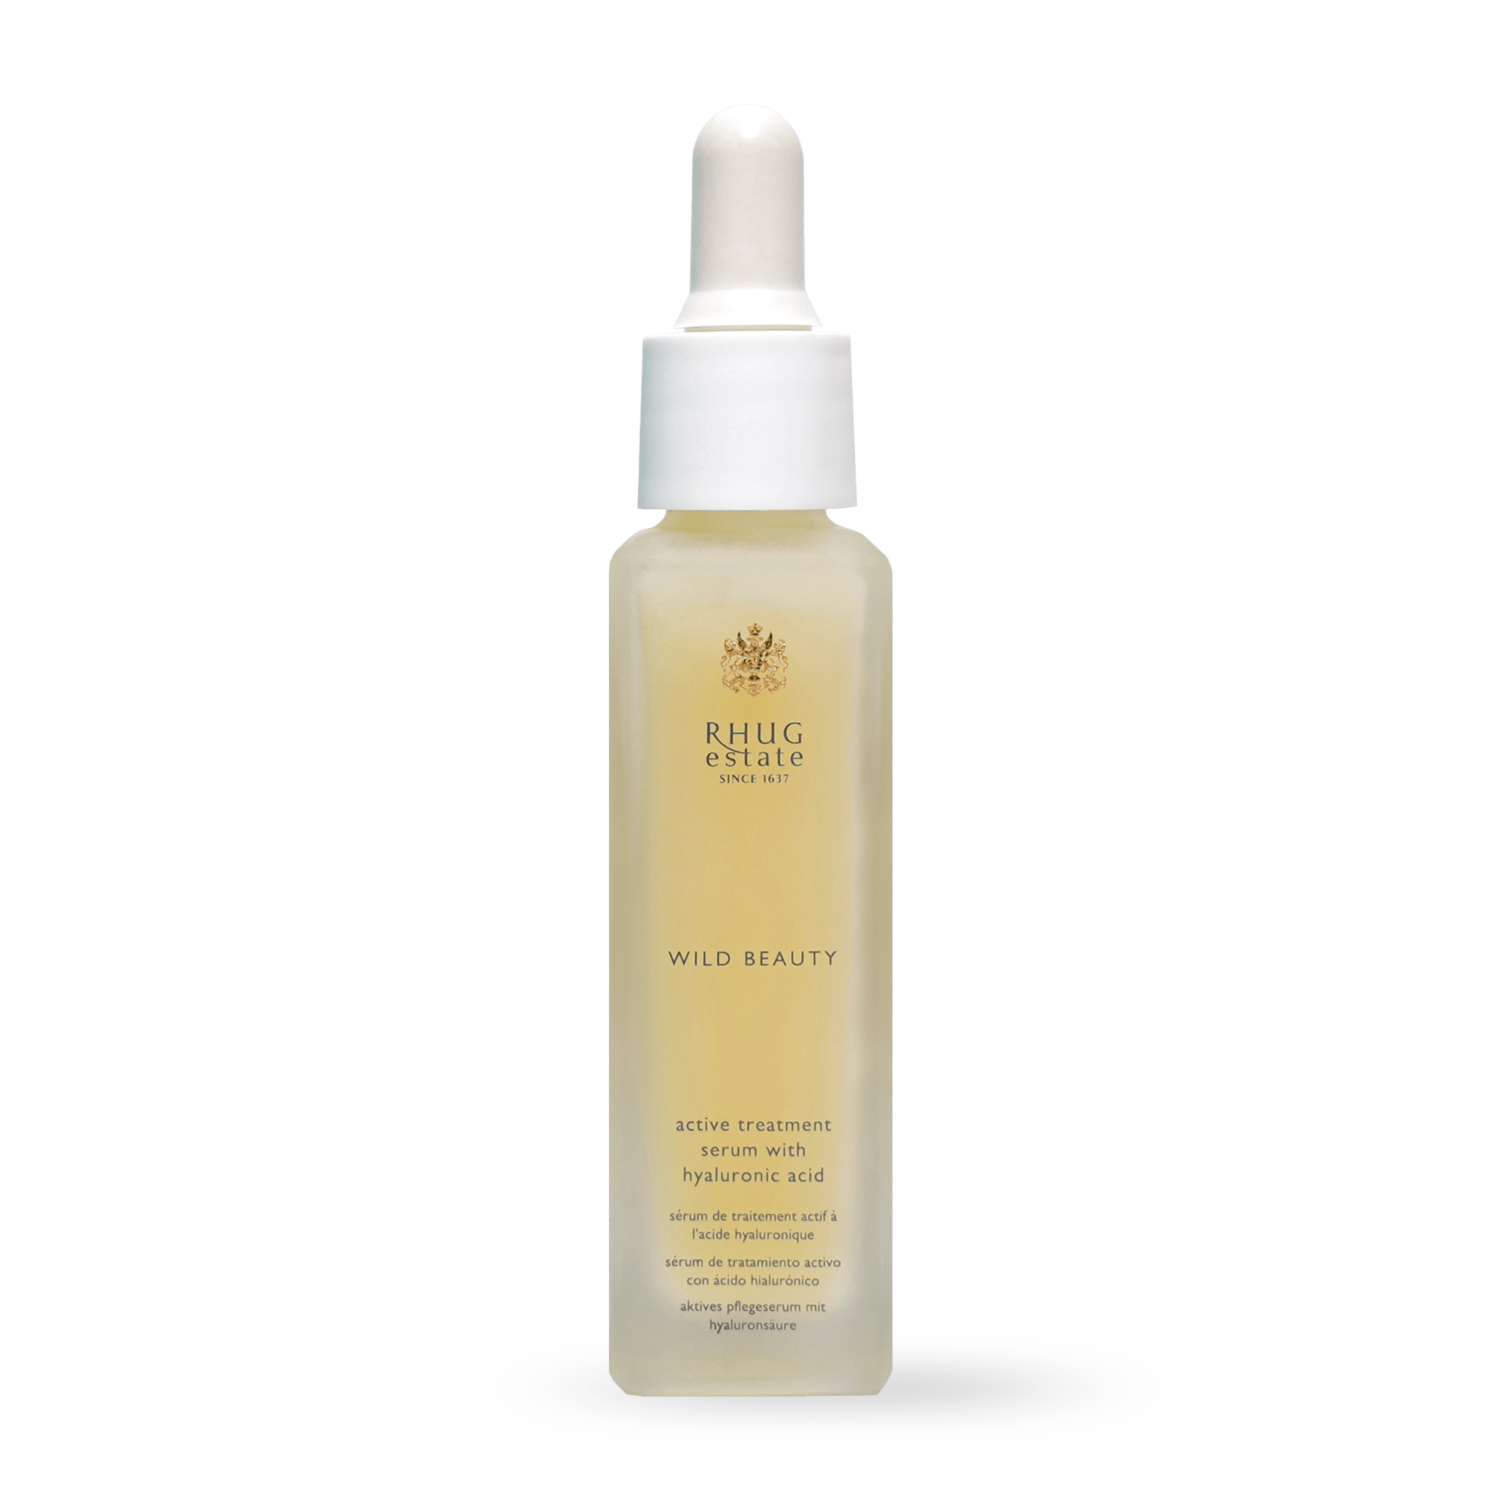 Active Treatment Serum with Hyaluronic Acid by Rhug Wild Beauty